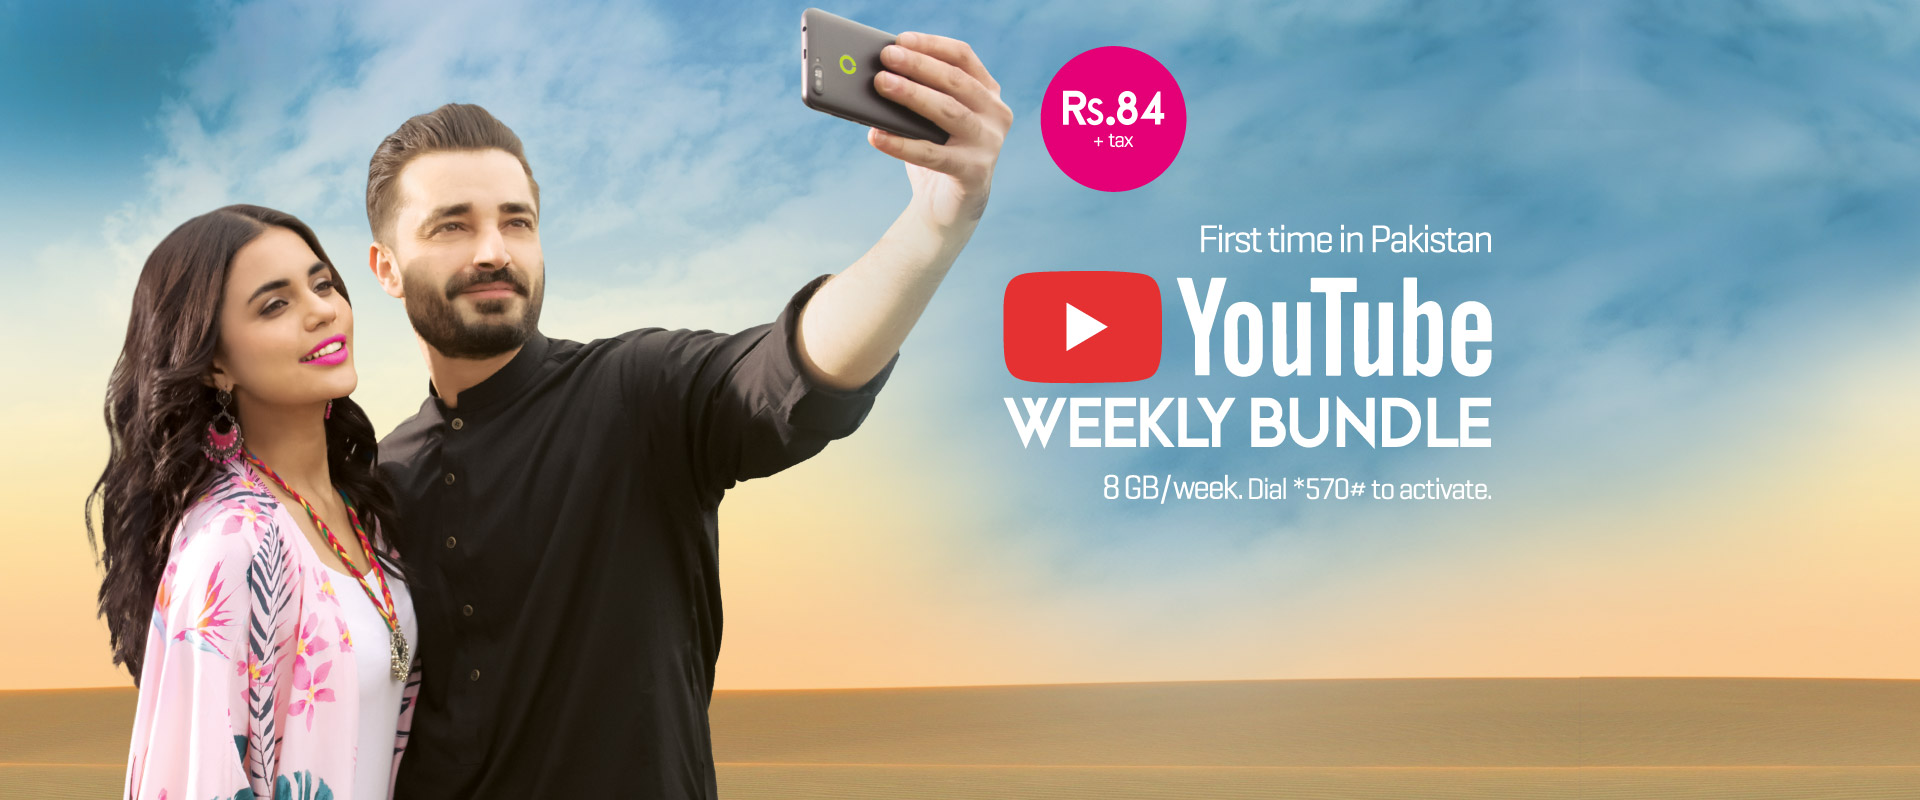 Zong YouTube Weekly Bundle Offer 2020 Activate, Price